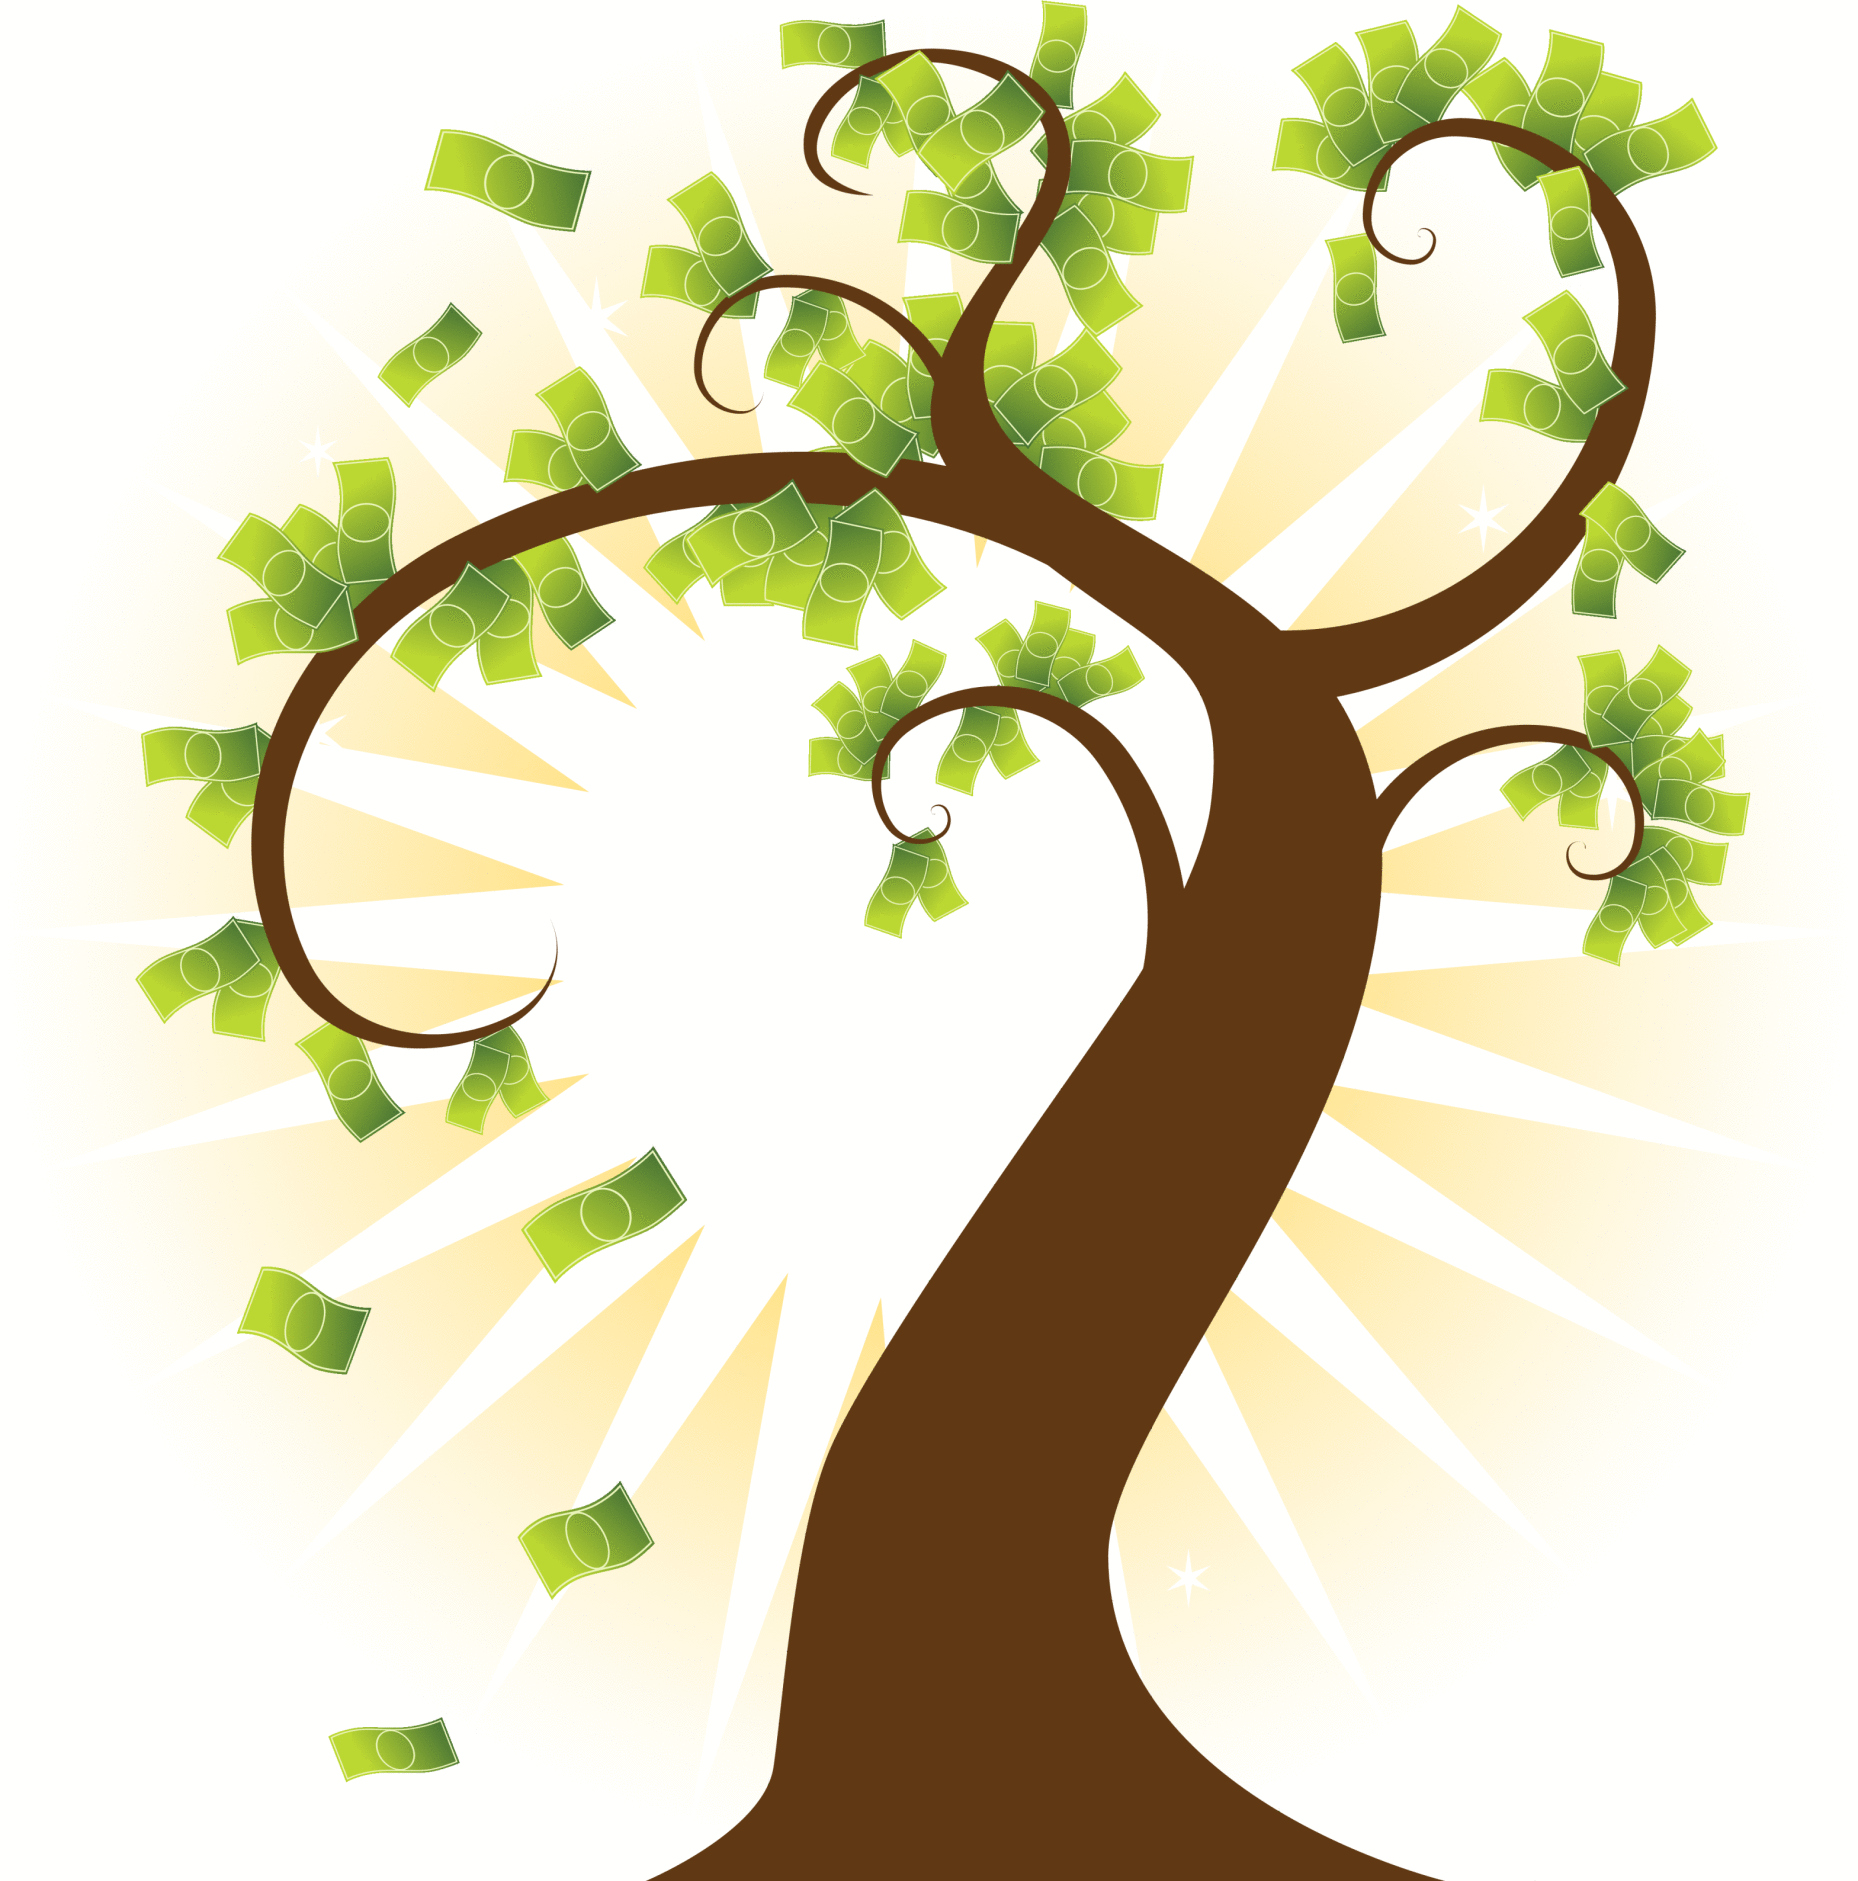 Money Tree Images | Clipart Panda - Free Clipart Images